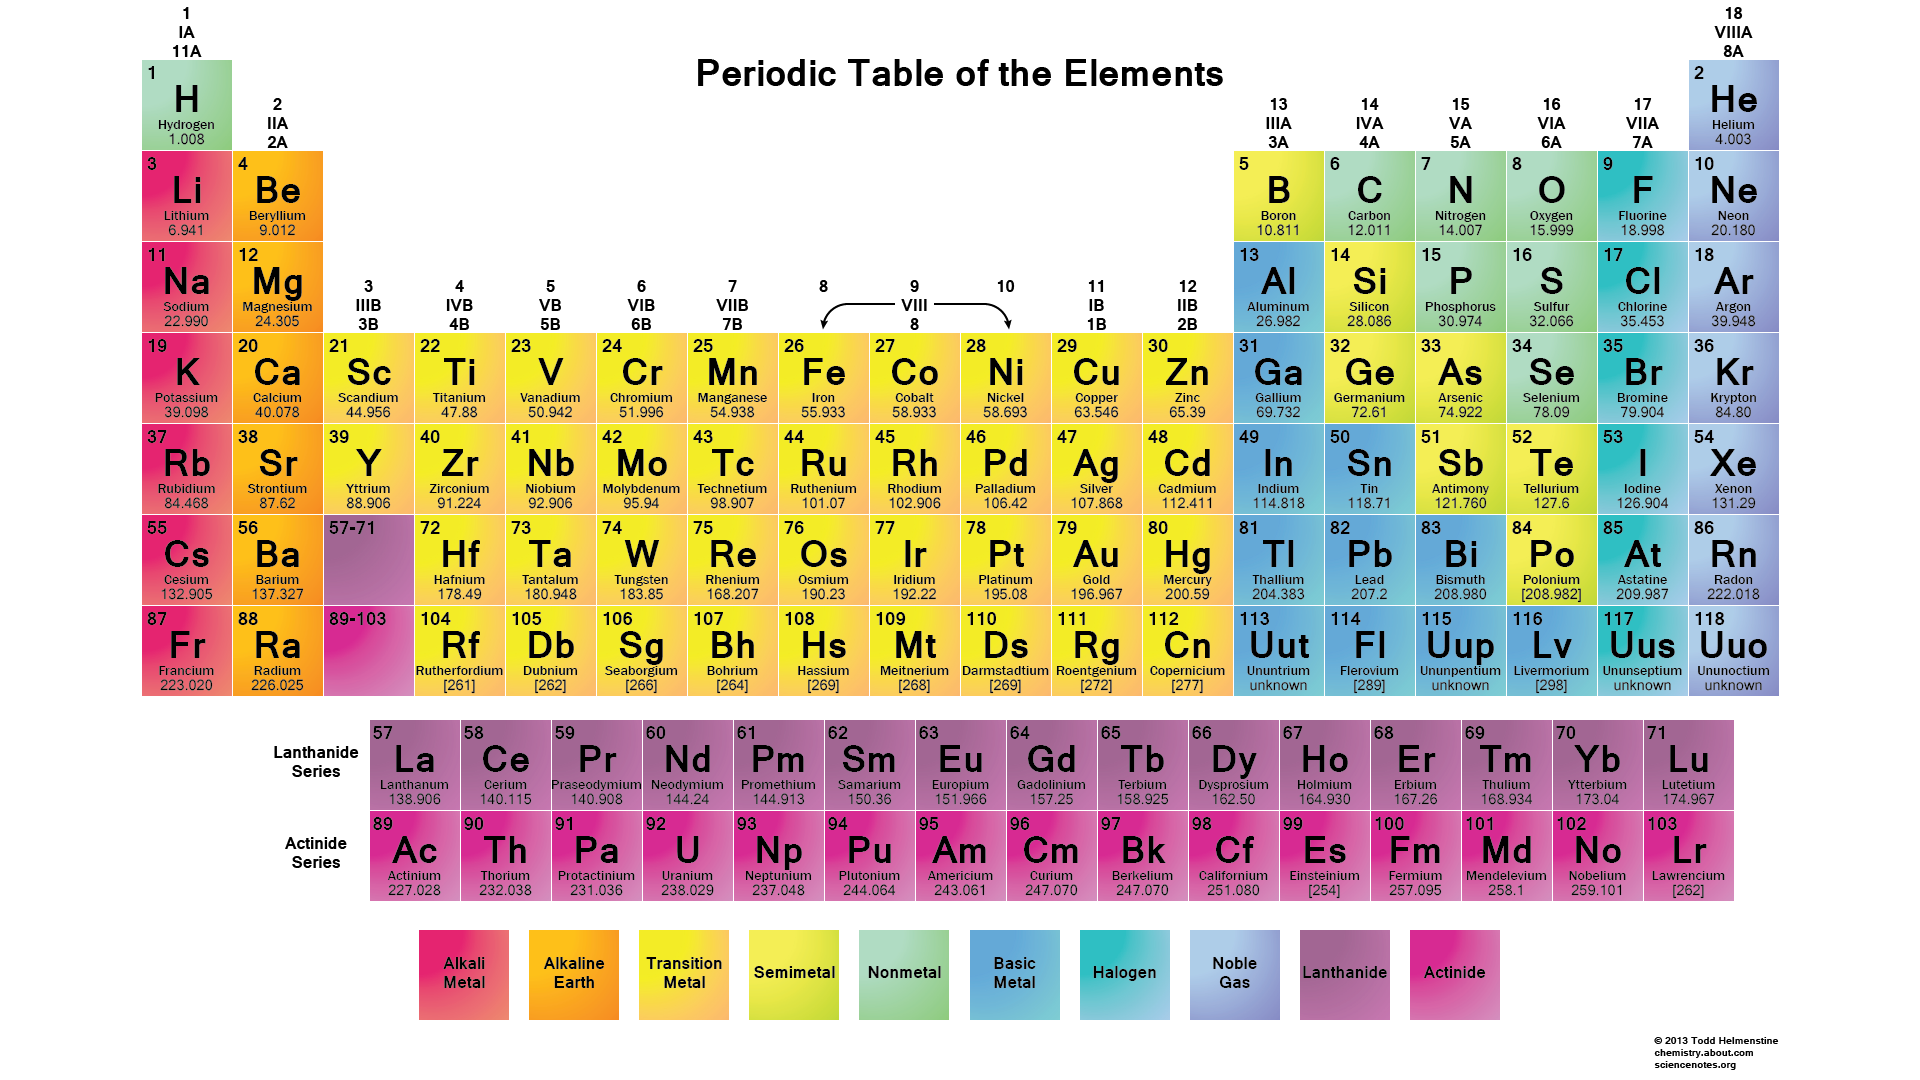 30 printable periodic tables for chemistry science notes and projects periodic table wallpaper urtaz